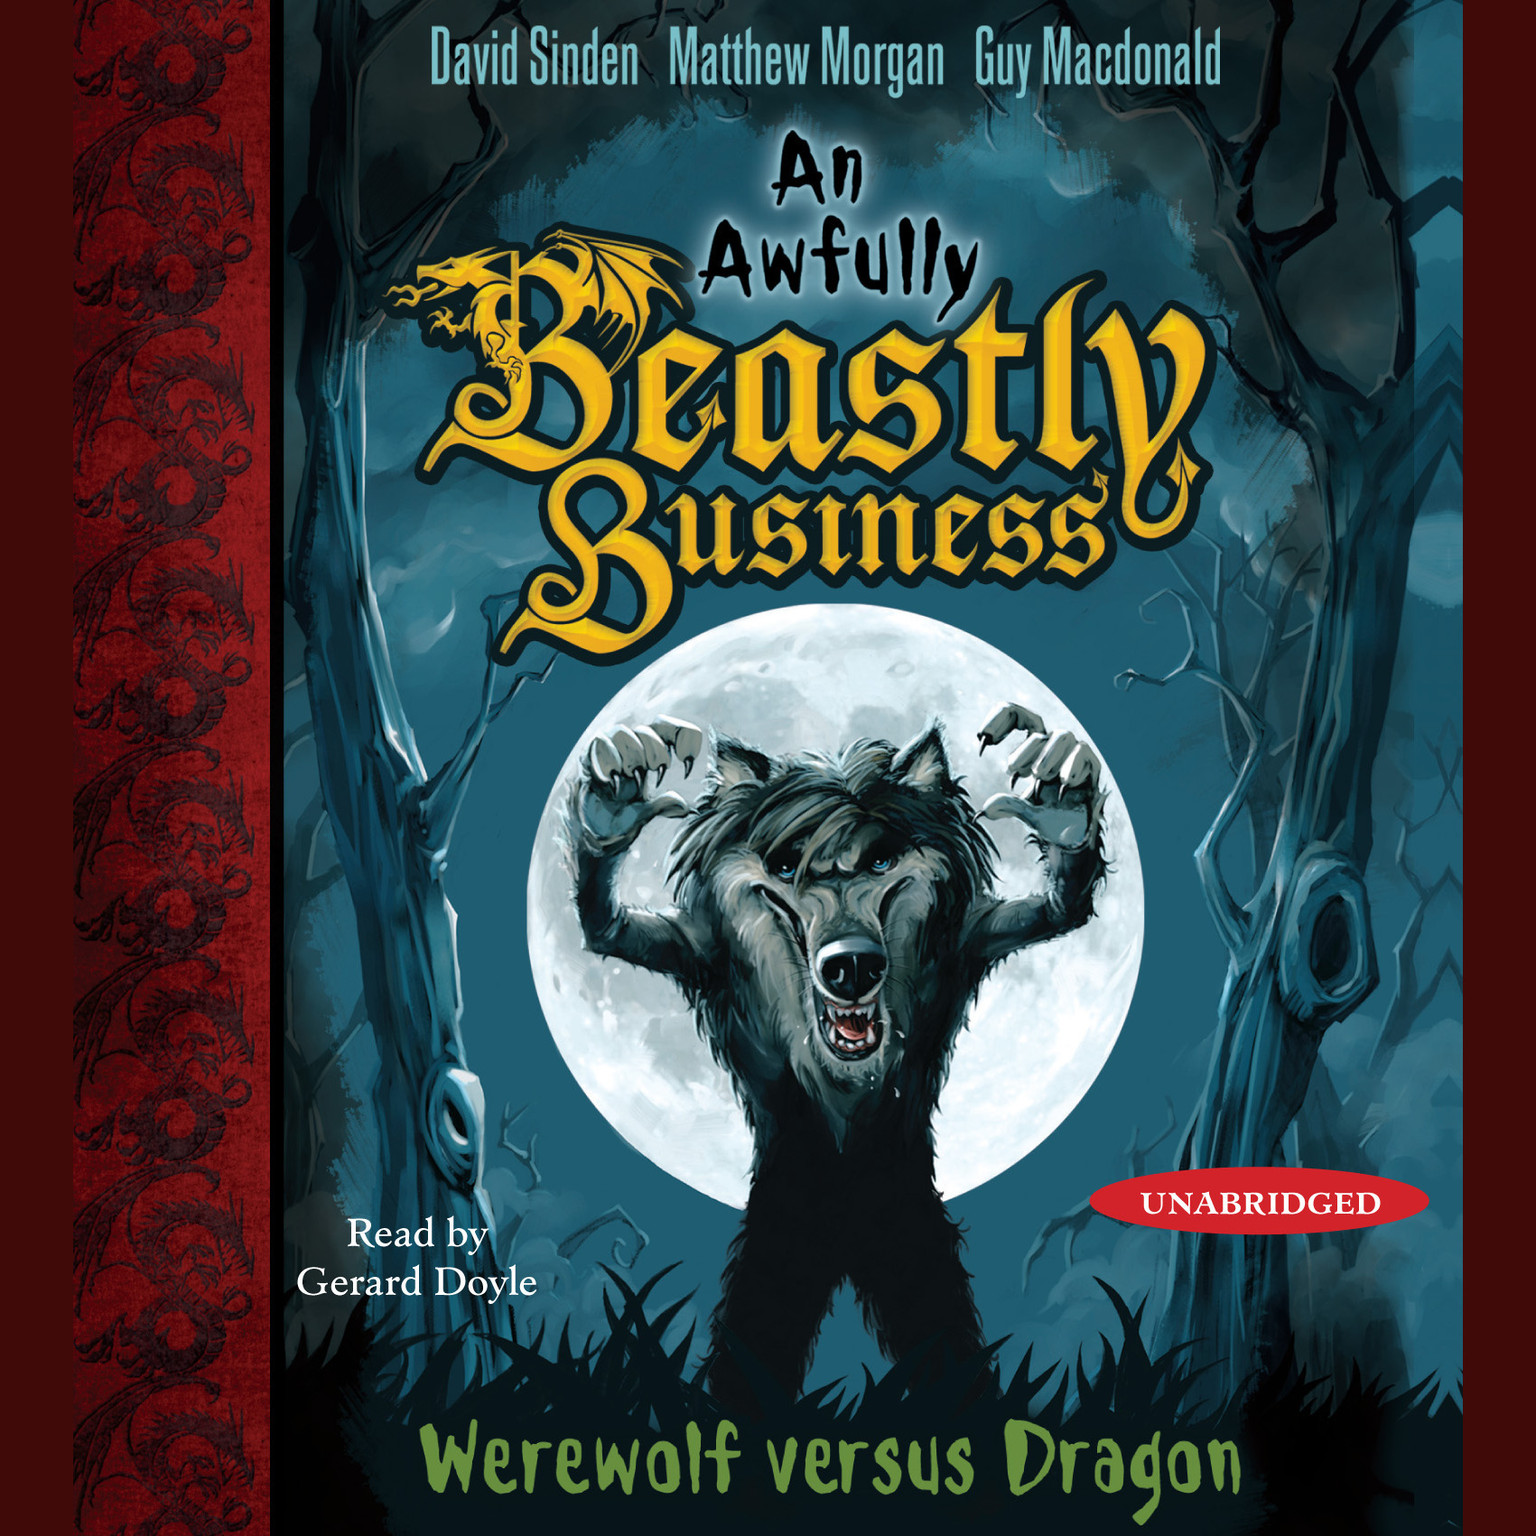 Printable Werewolf versus Dragon: An Awfully Beastly Business Book One Audiobook Cover Art